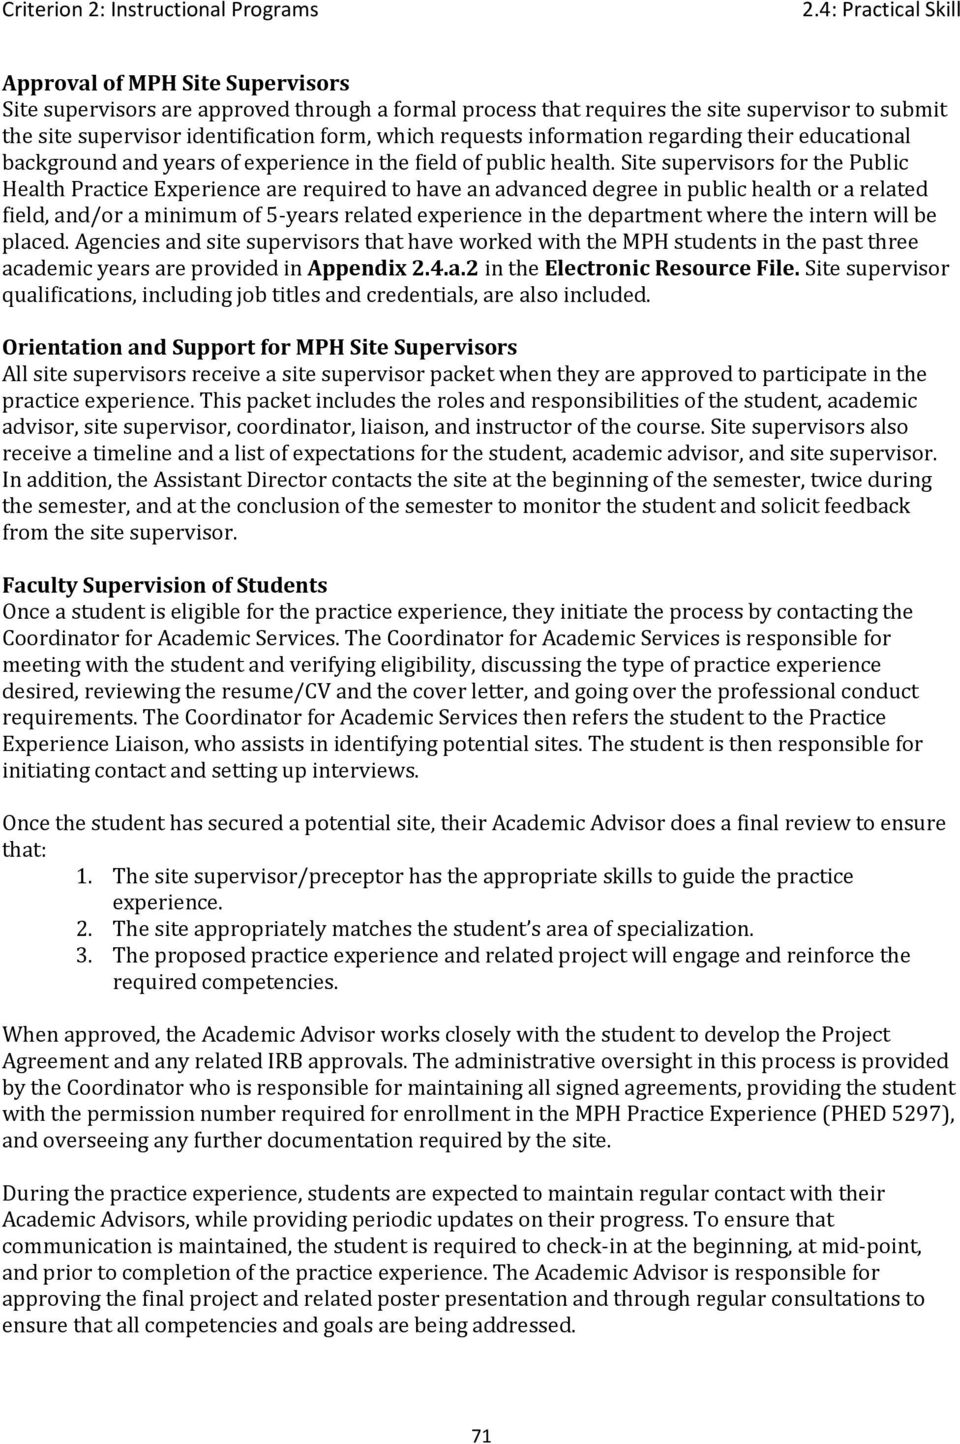 Site supervisors for the Public Practice Experience are required to have an advanced degree in public health or a related field, and/or a minimum of 5-years related experience in the department where